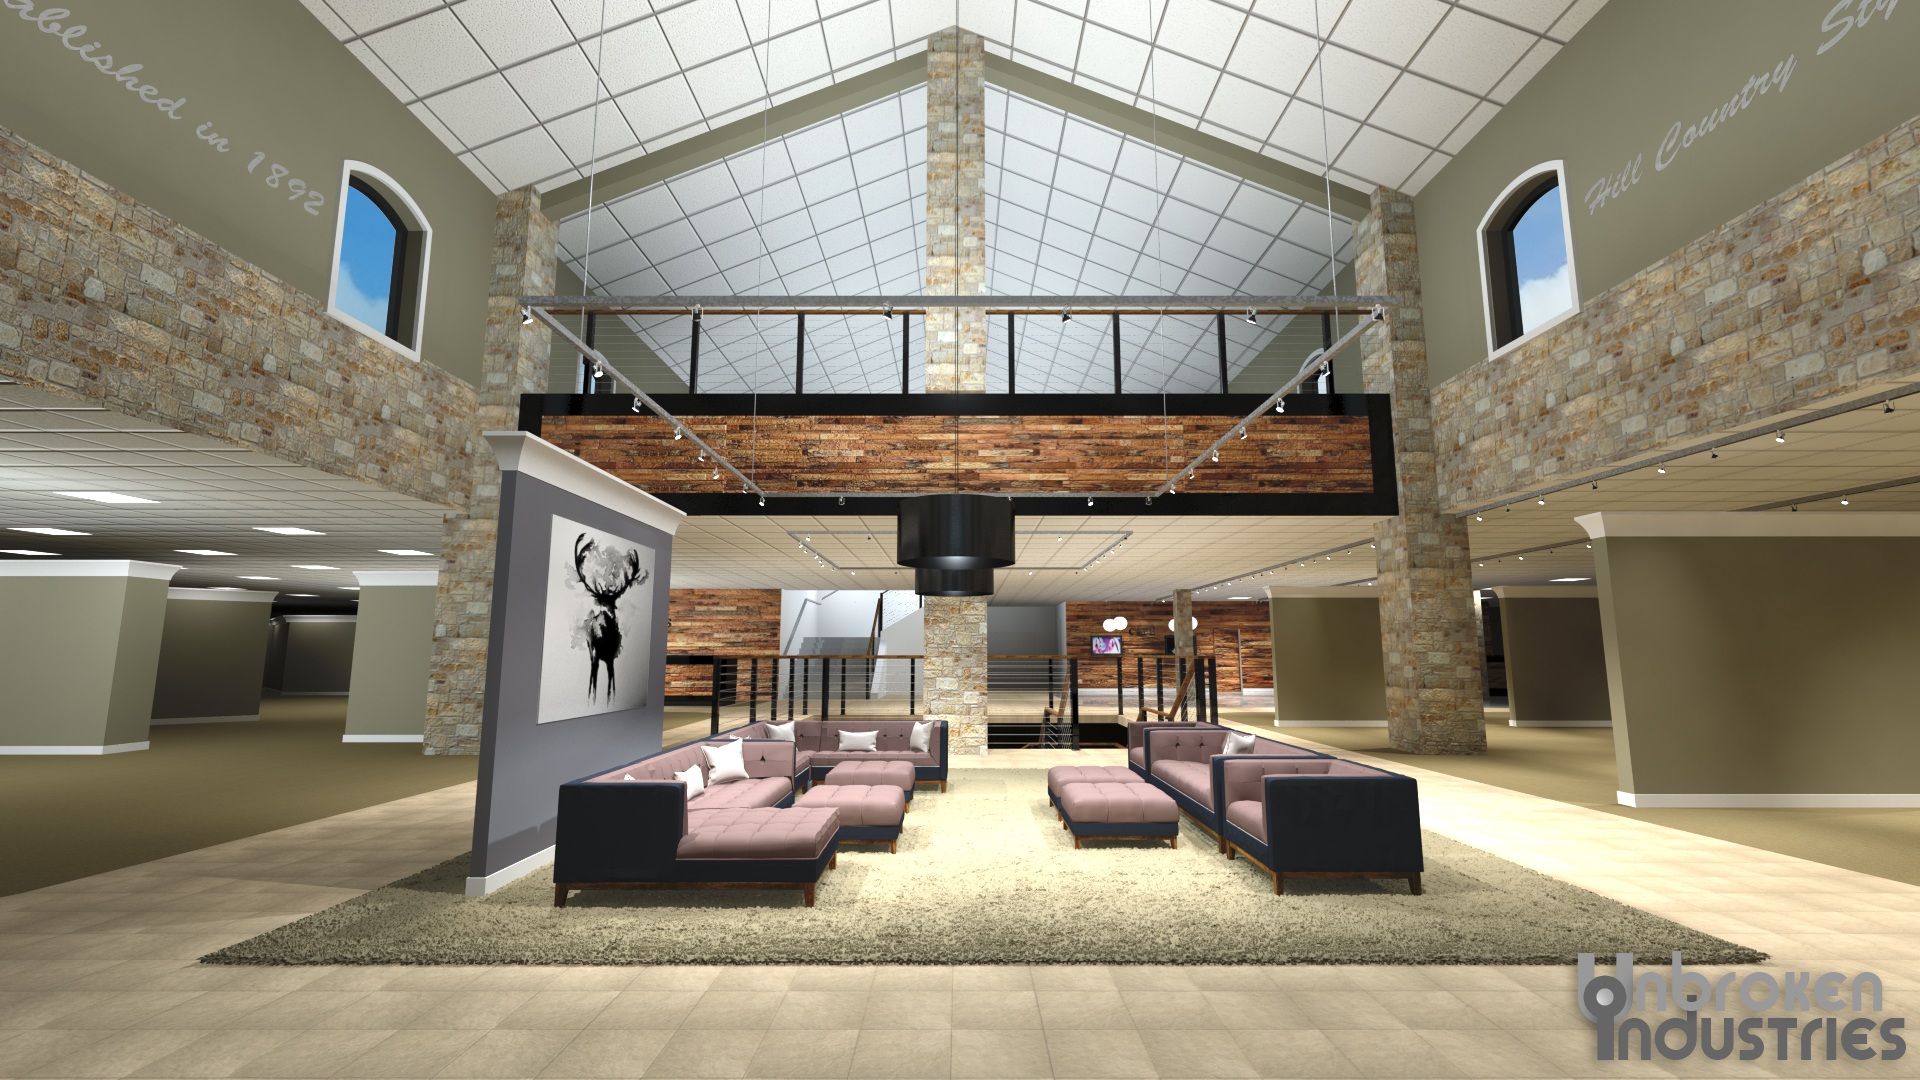 Furniture Store Interior Rendering